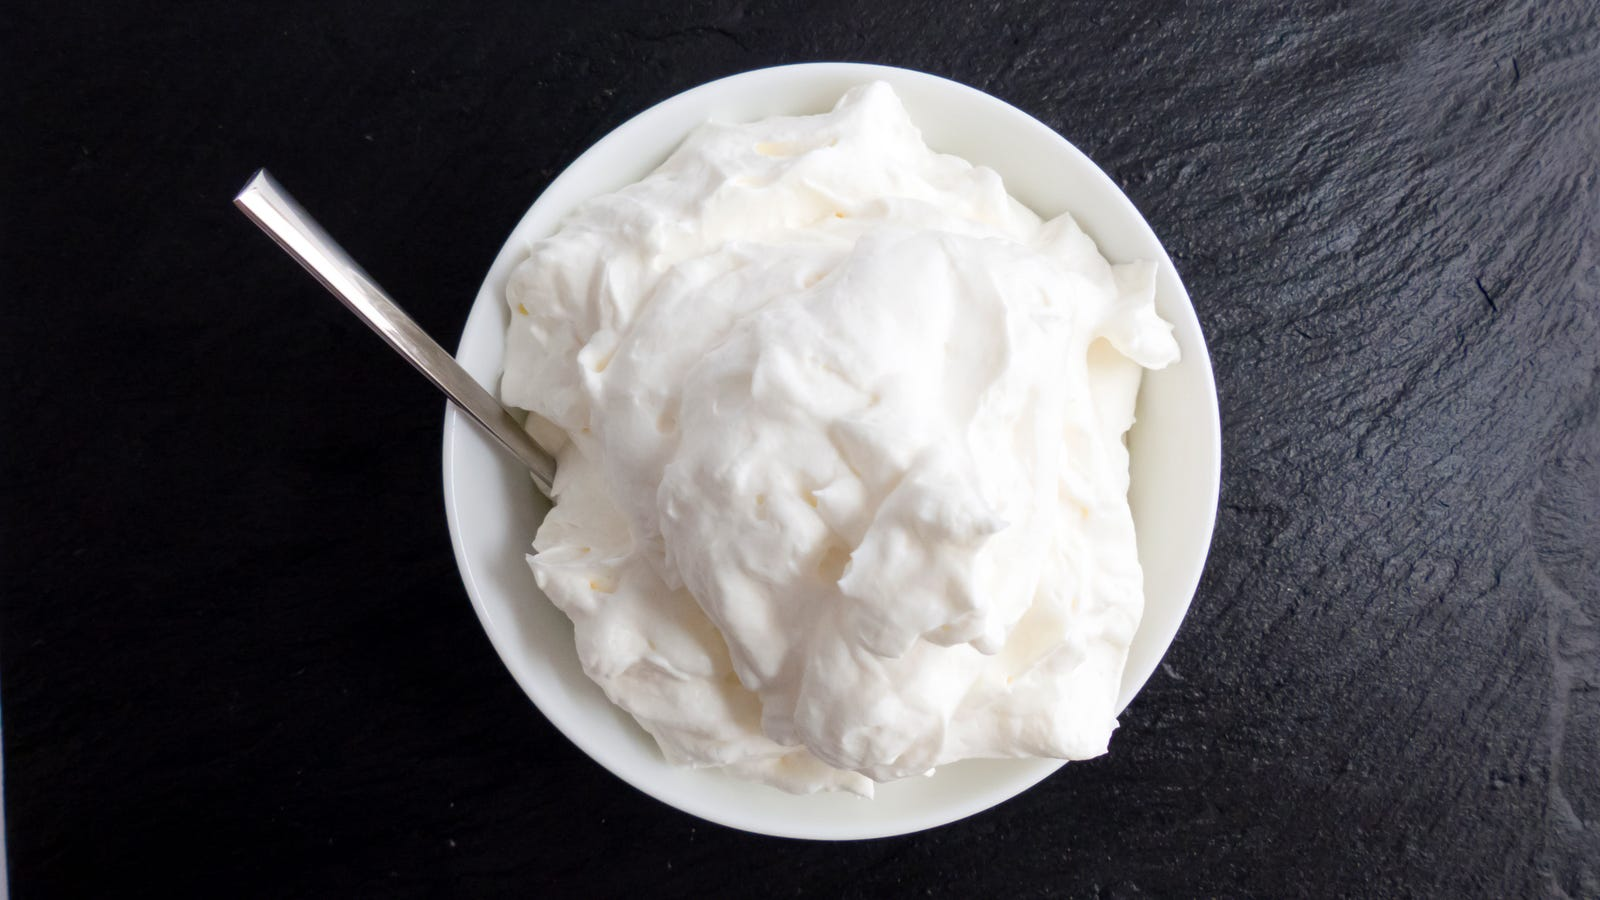 Is it worth it to make your own crème fraîche? Absolutely.